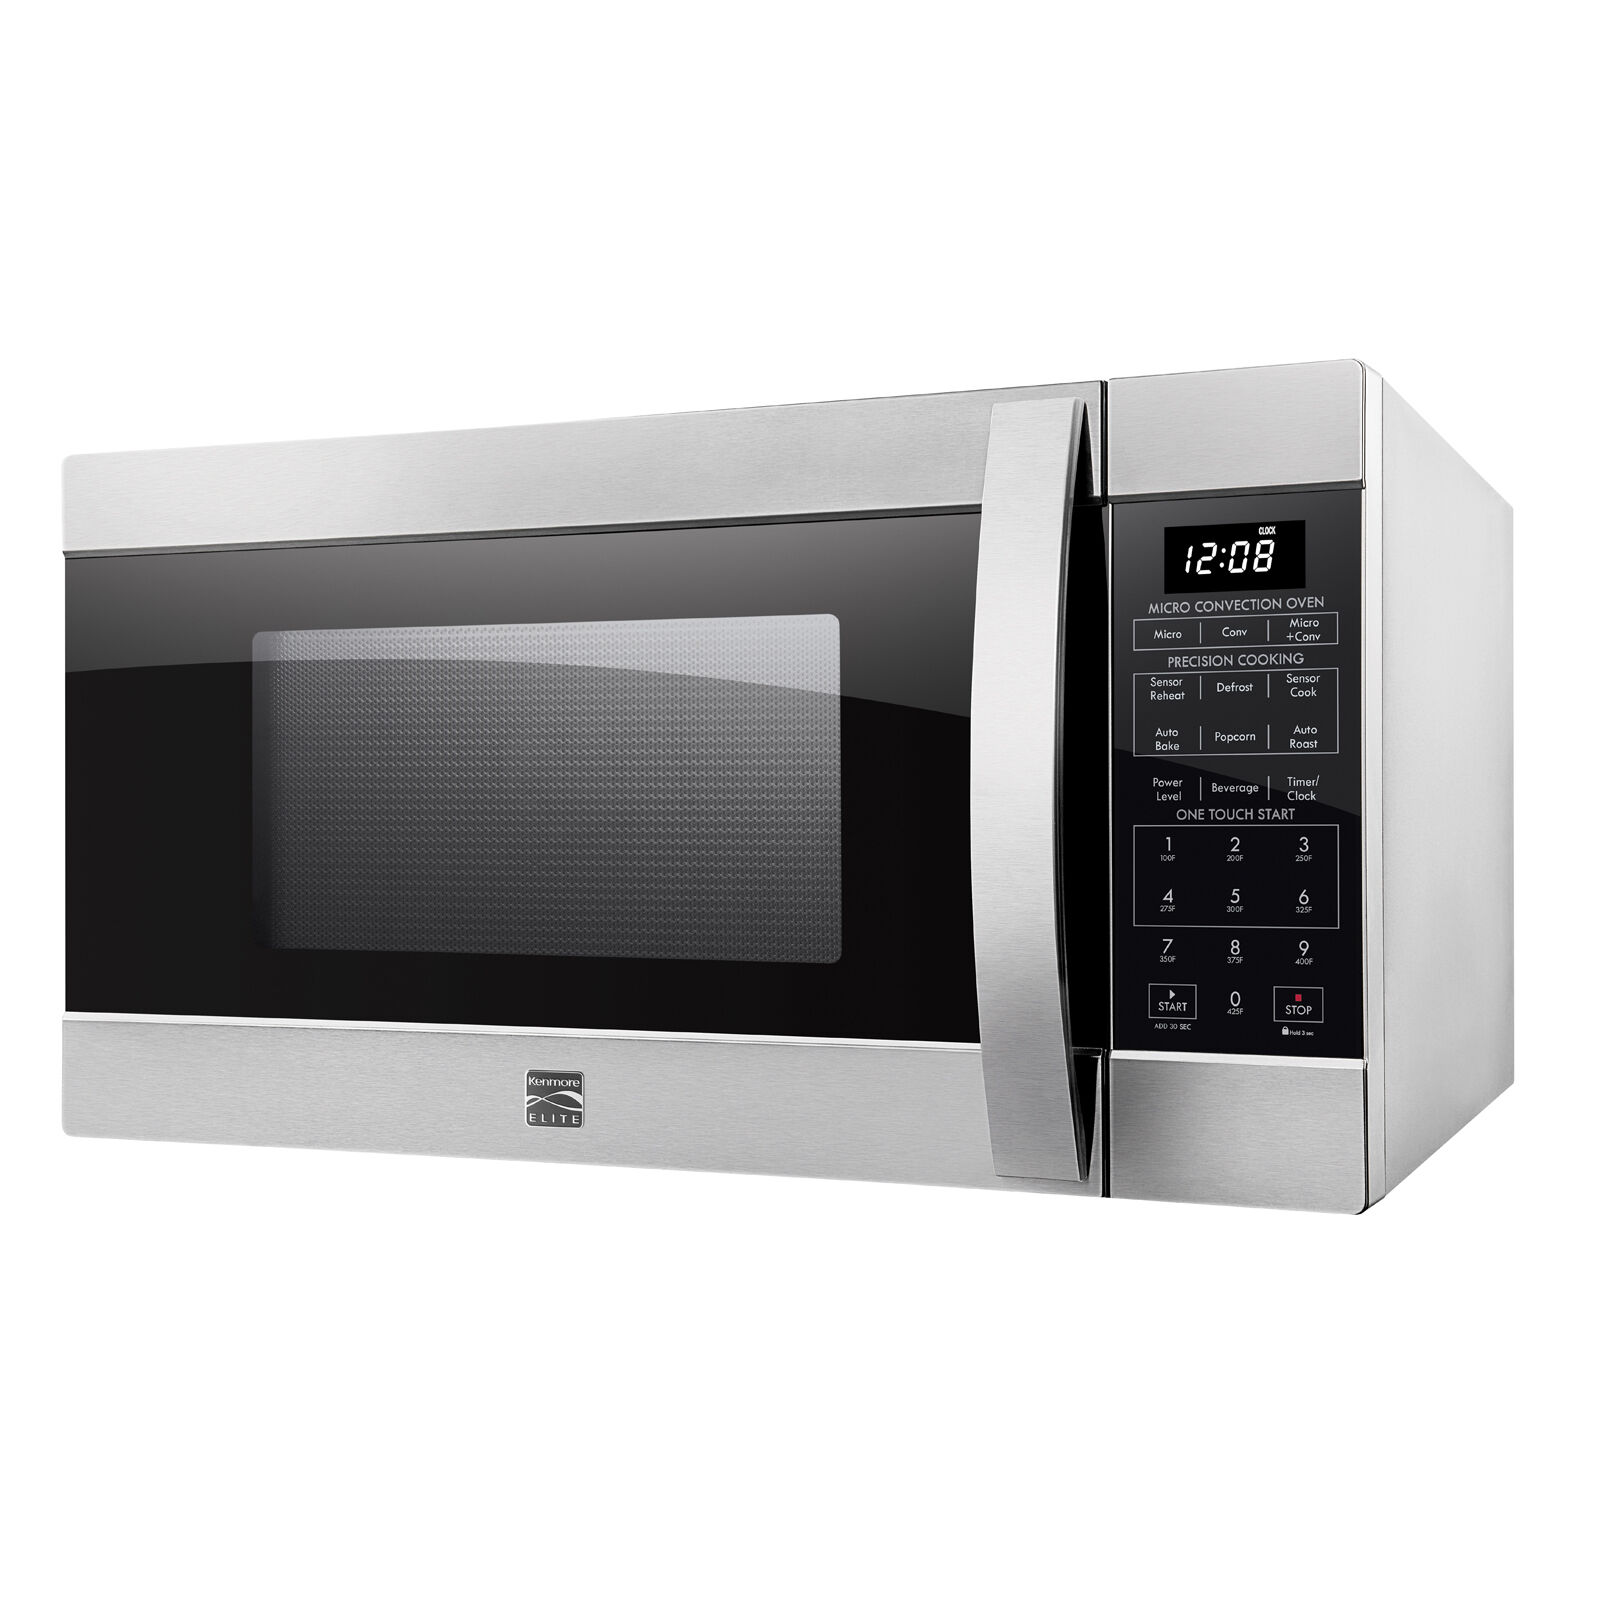 Kenmore Elite 15 Cu Countertop Microwave Convection Oven